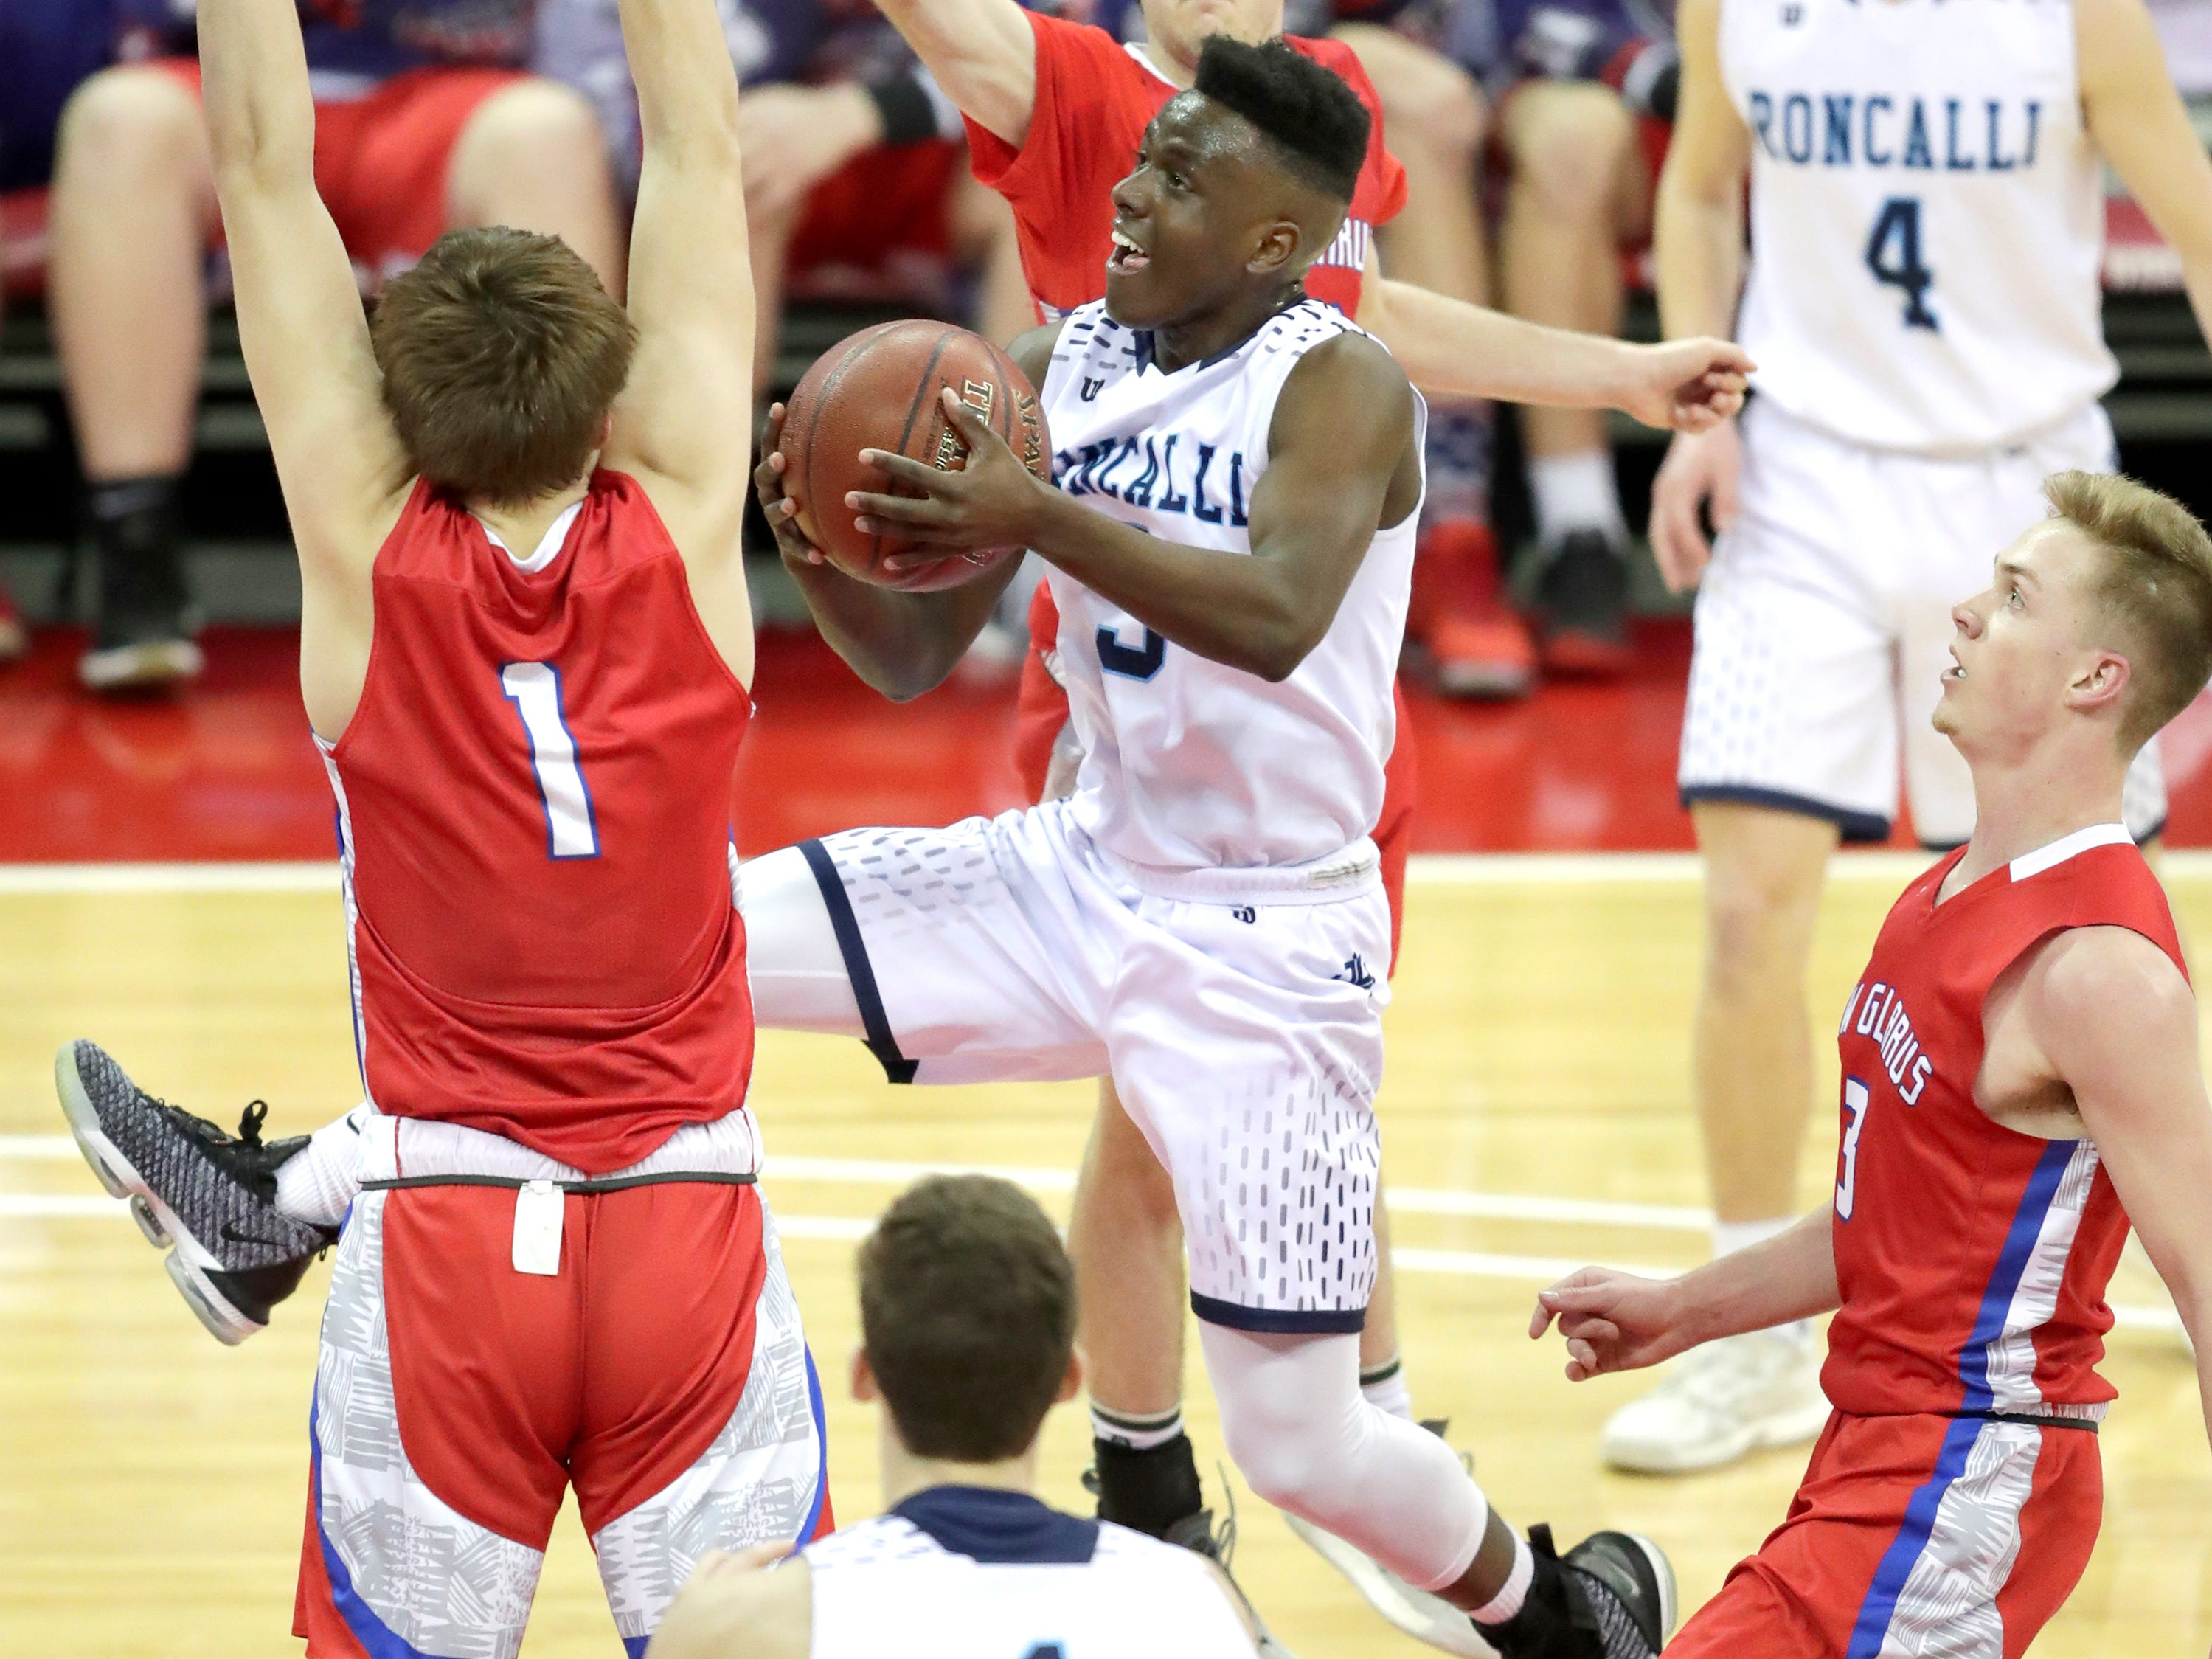 Roncalli's Chombi Lambert eyes the rim during Thursday's WIAA Division 4 state semifinal boys basketball game against New Glarus at the Kohl Center in Madison.